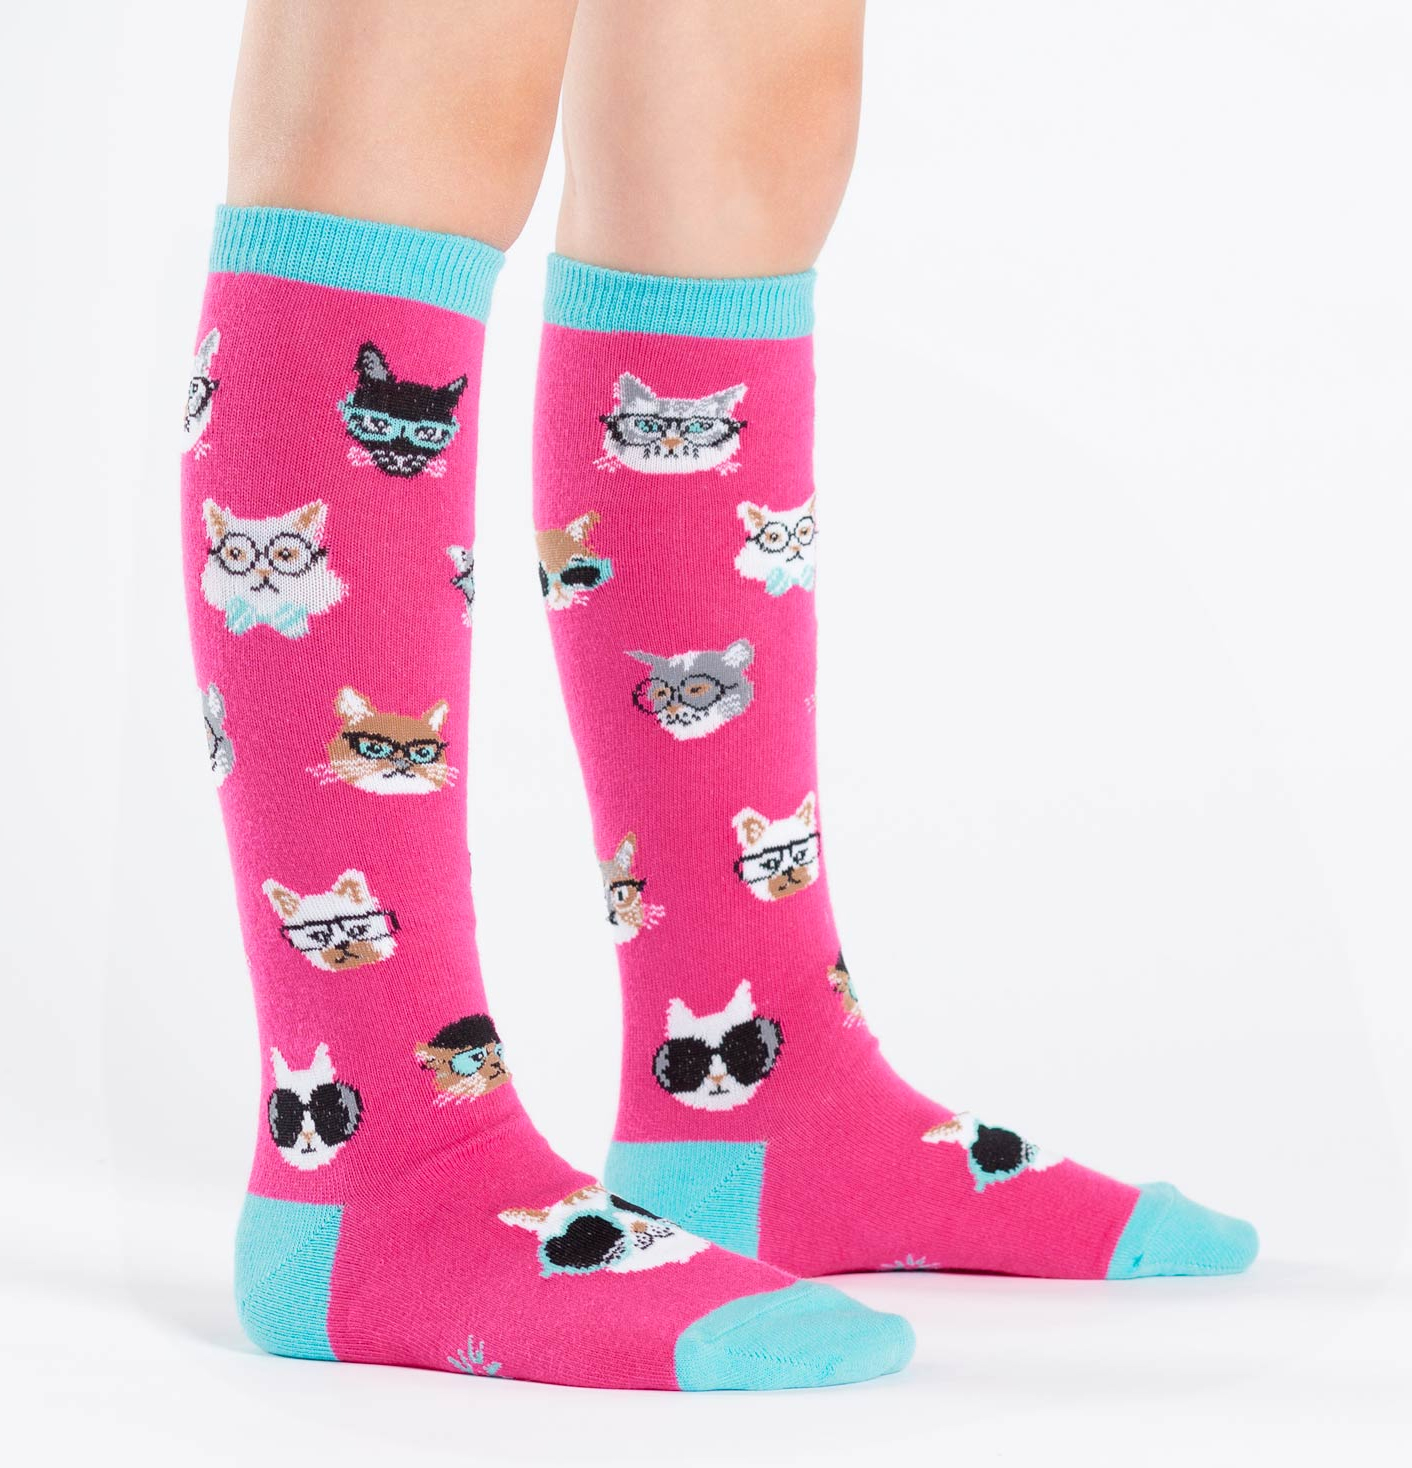 Cool Cat Supplies Hot Trend 15 Hipster Cat Accessories And School Supplies